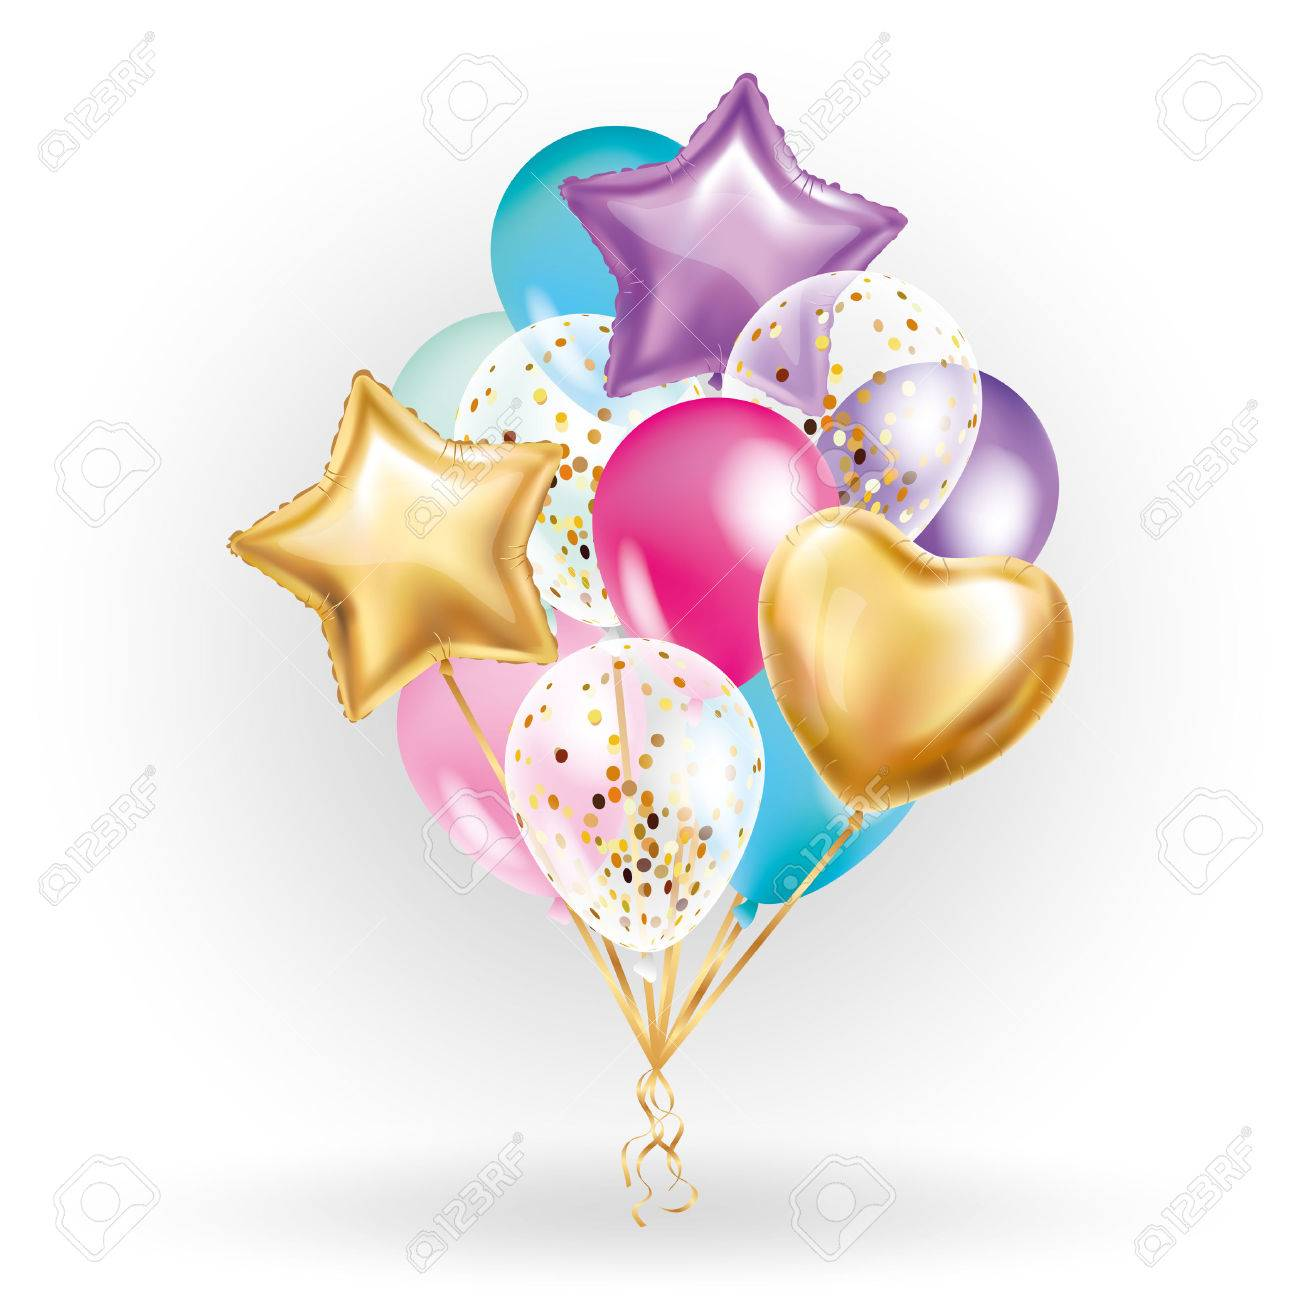 Heart star Gold balloon Bouquet. Frosted party balloons event design. Balloons isolated in the air. Party decorations for wedding, birthday, celebration, love, valentines, kids. Color transparent balloon - 72785786